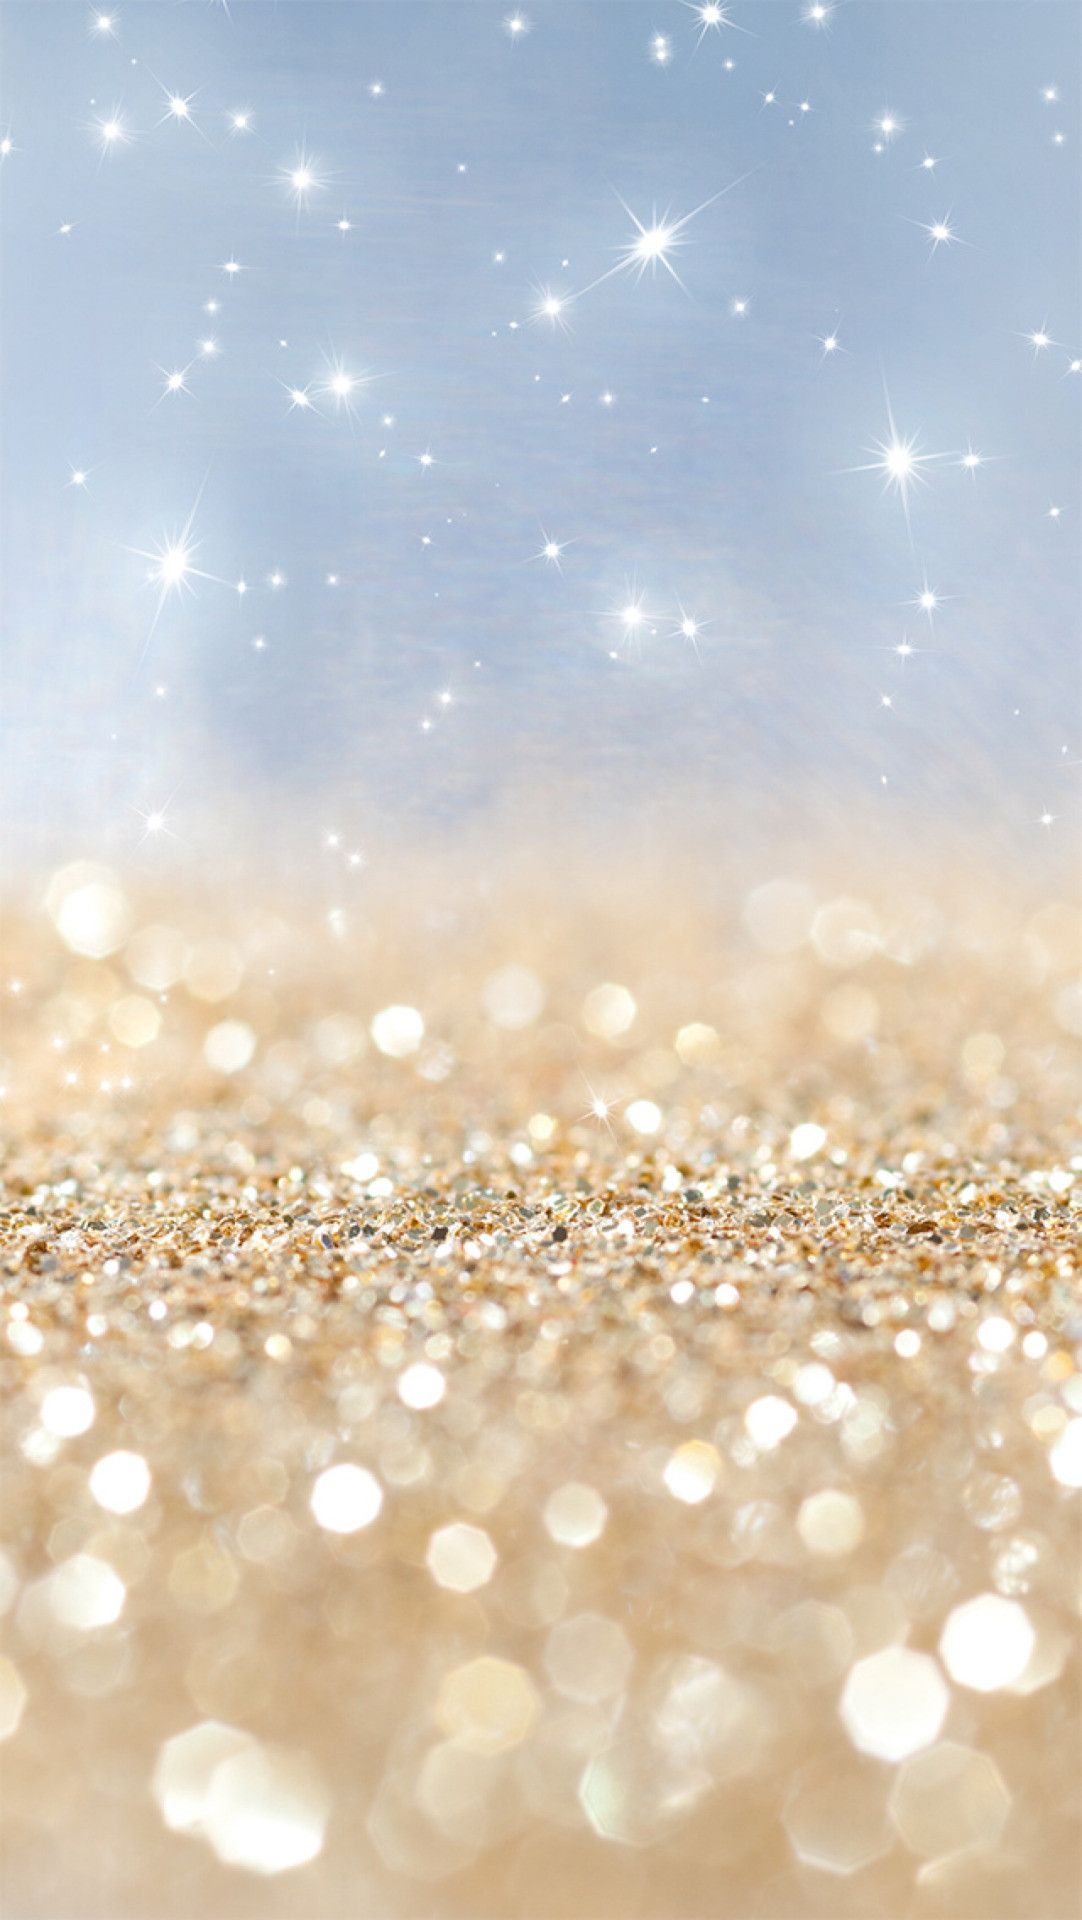 Glitter Iphone 5 Wallpapers Top Free Glitter Iphone 5